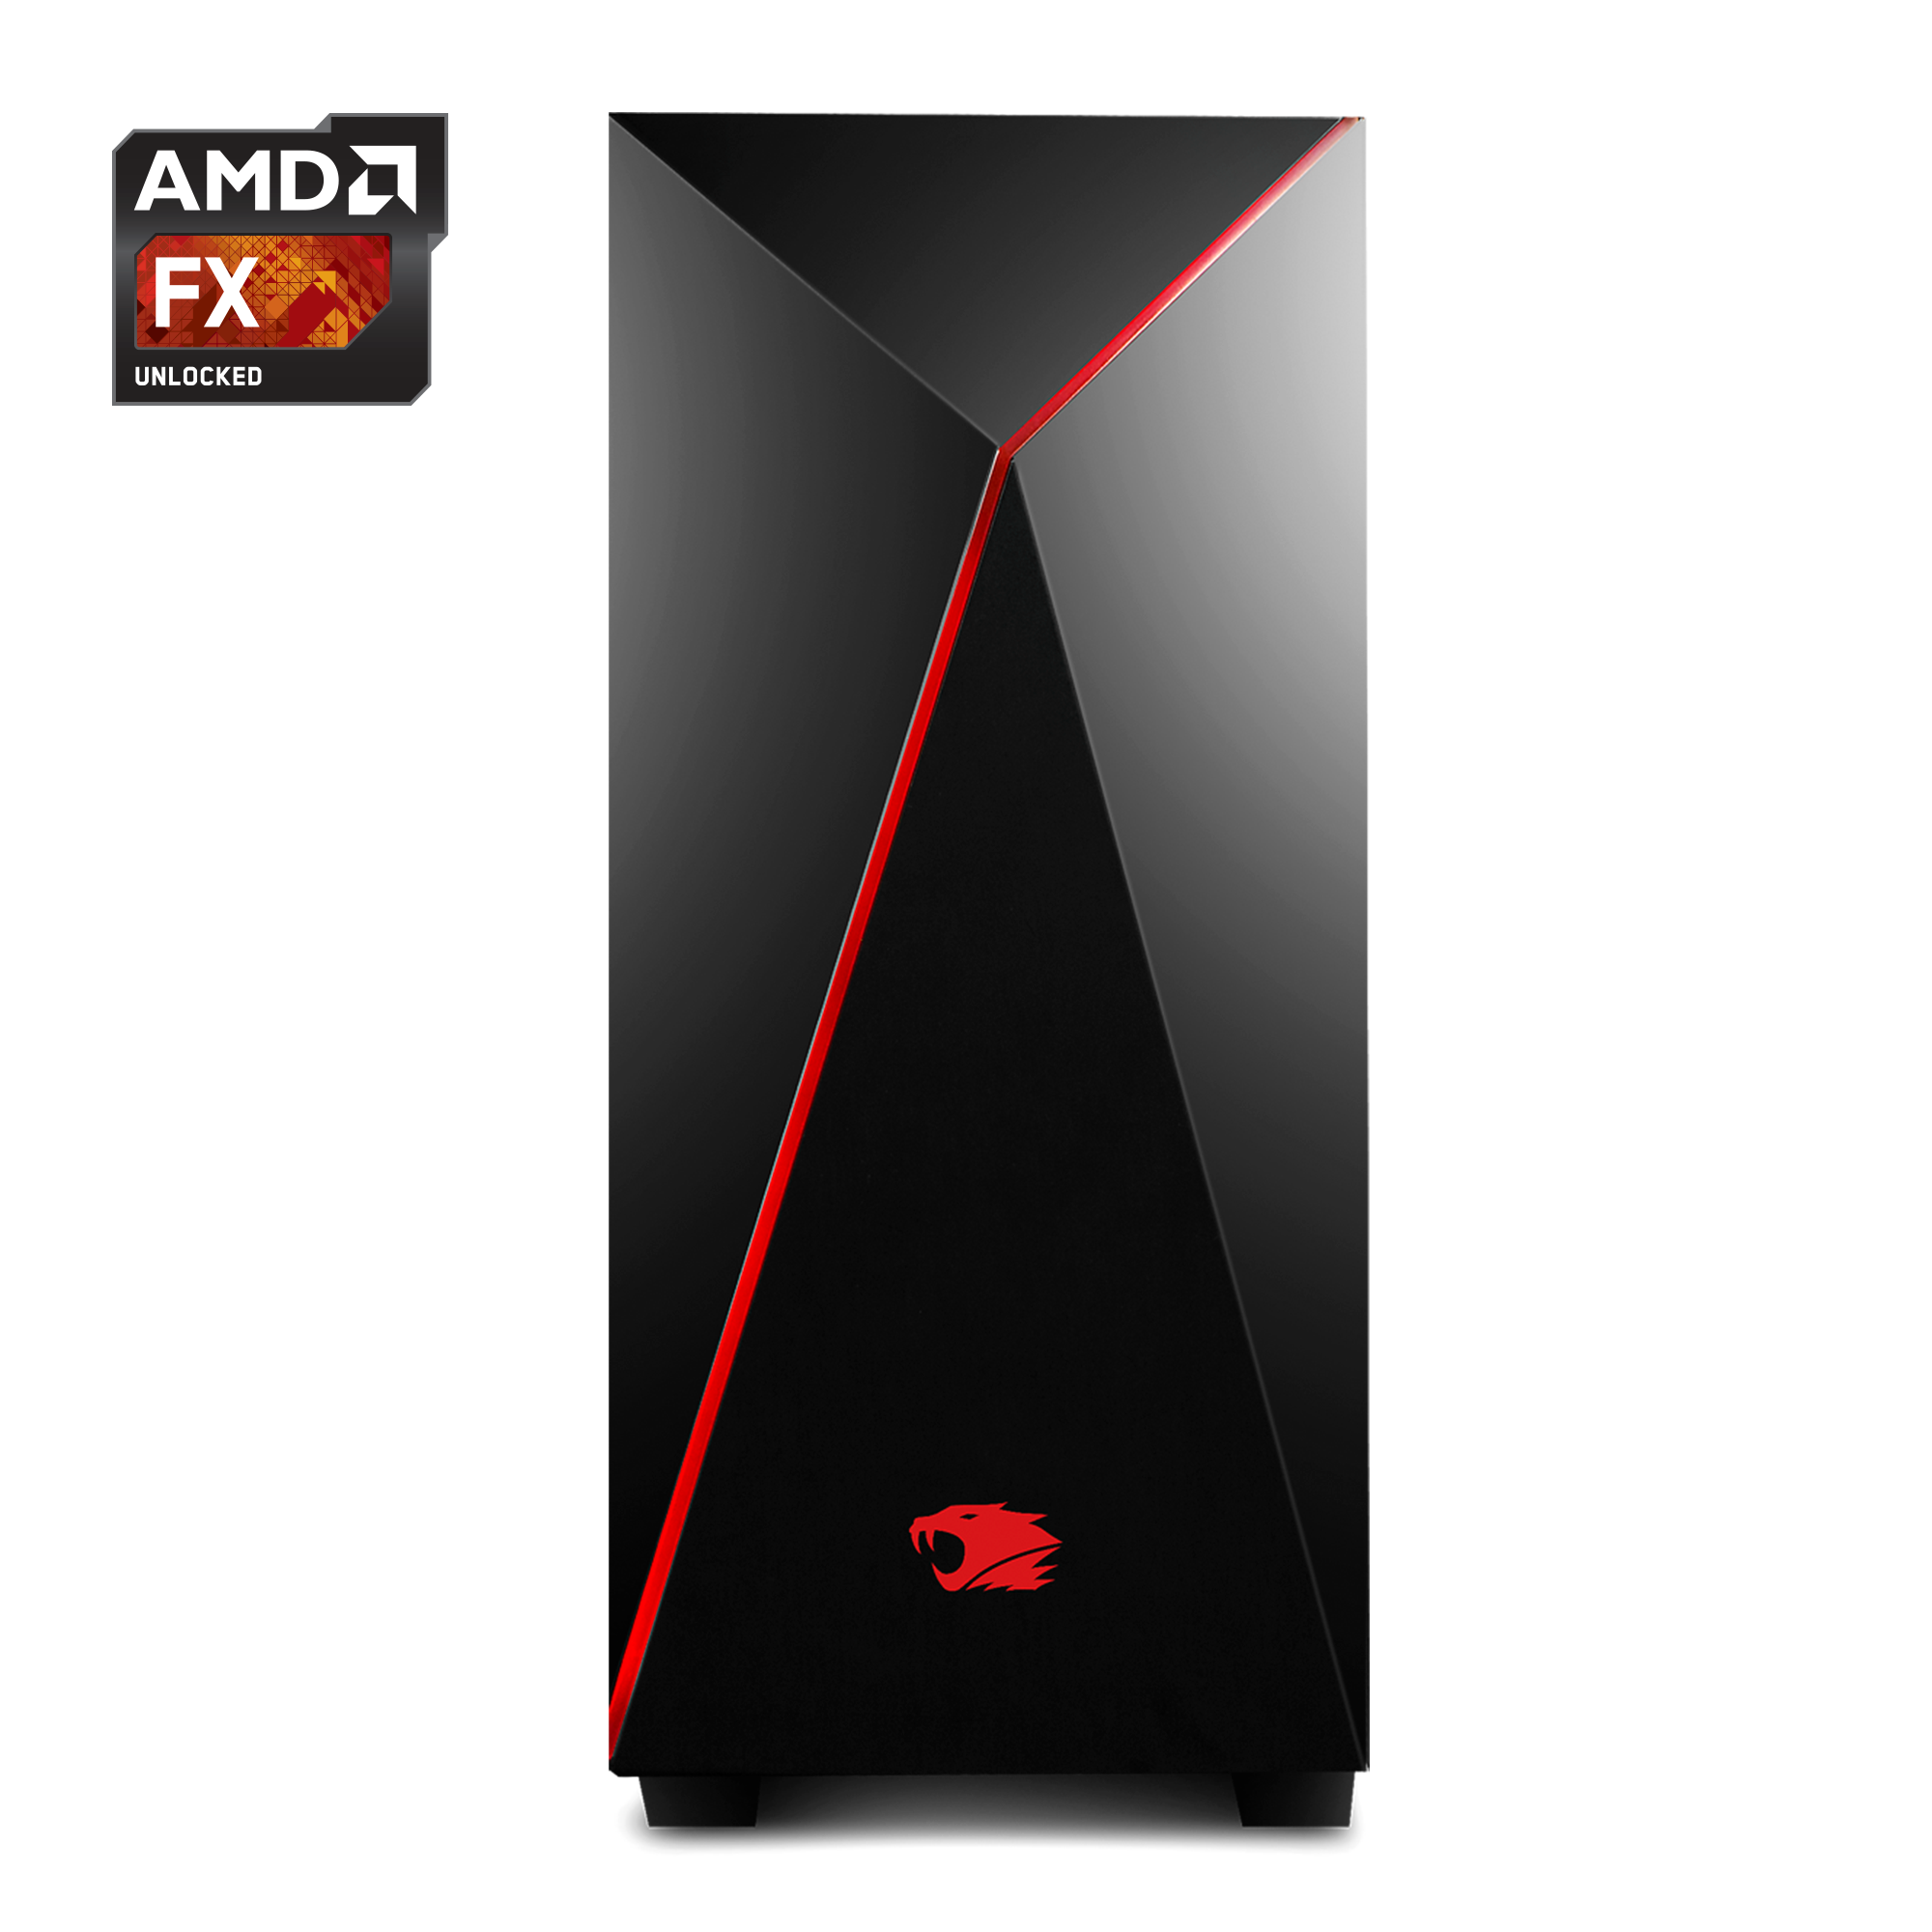 iBUYPOWER Gaming Desktop (Hex Core AMD FX-6300 / 8GB / 1TB)